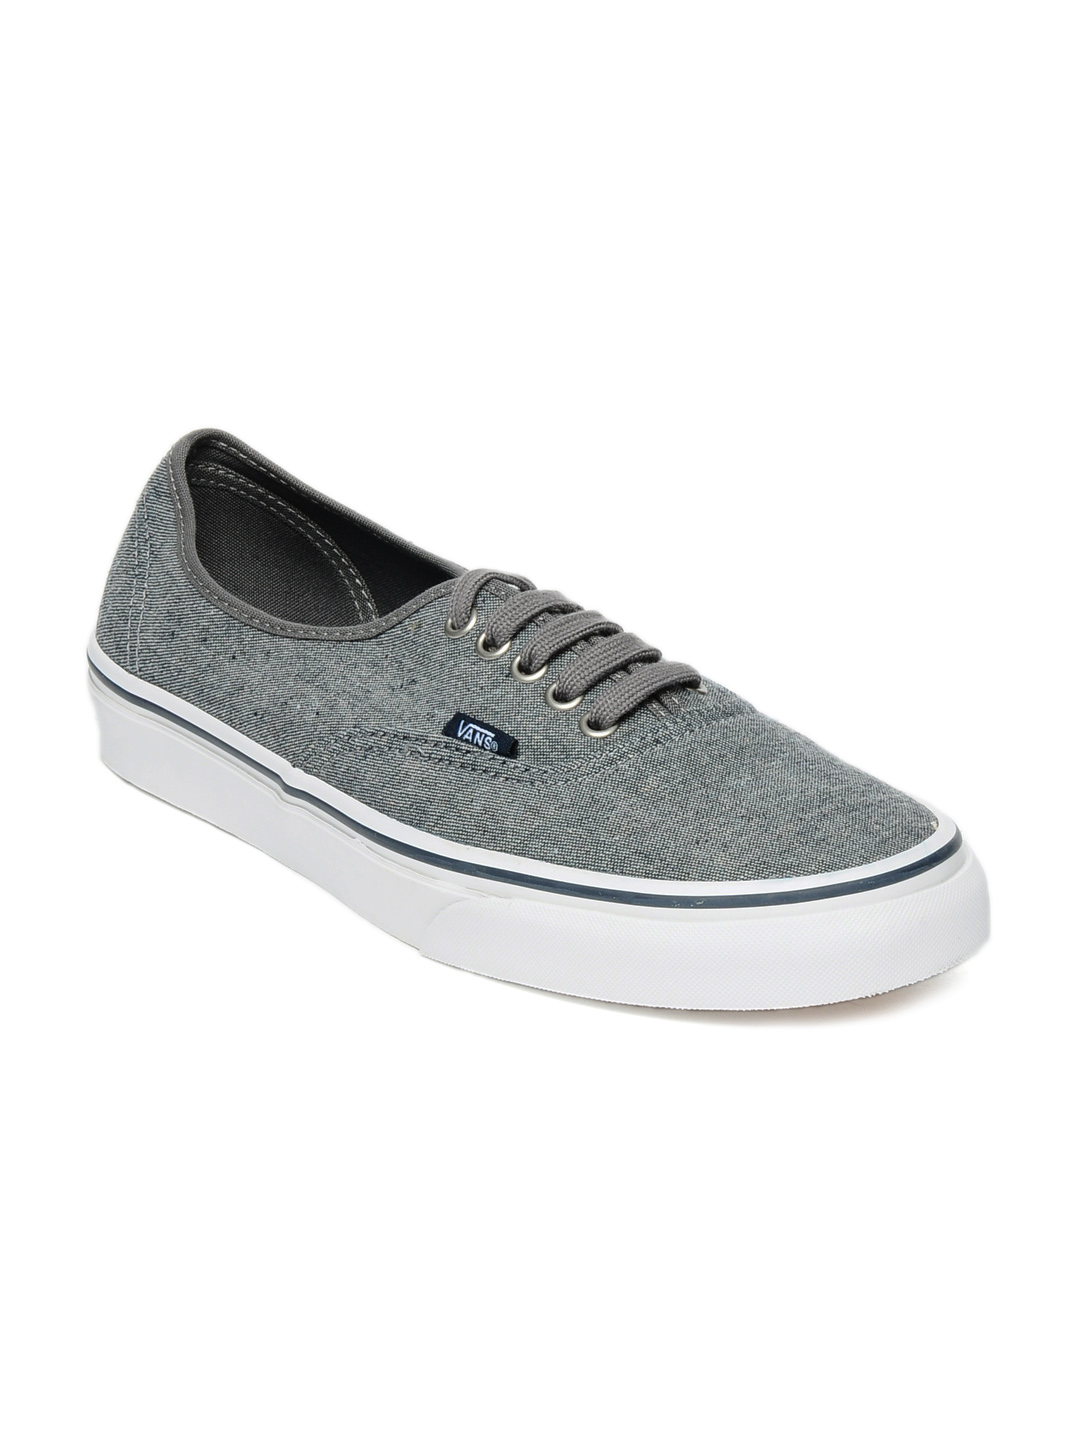 Cheap TOMS Shoes Outlet Online. - Toms Glitter Women Shoes Iron-grey